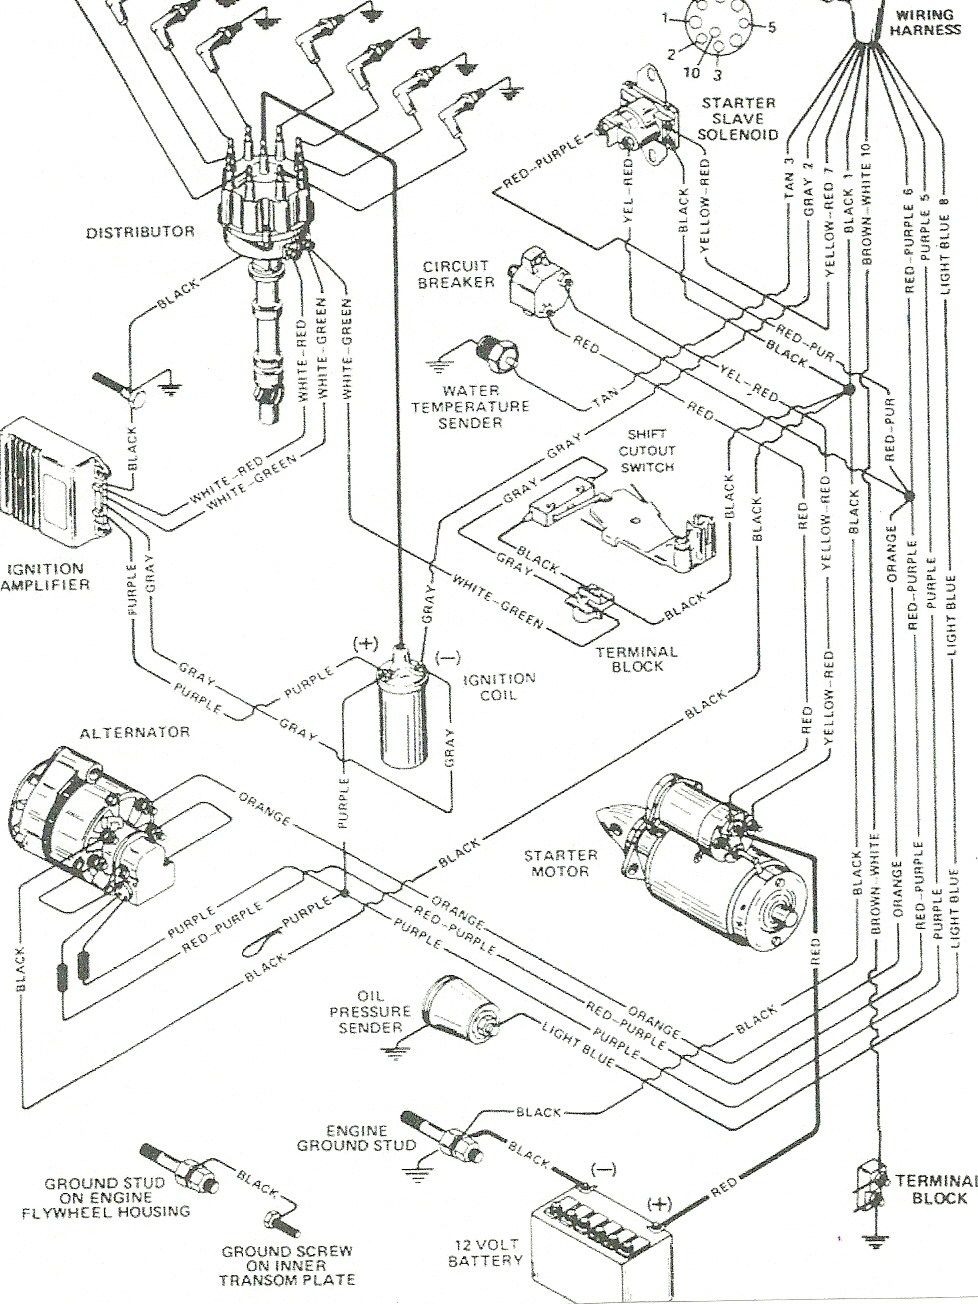 mercruiser 30 wiring diagram wiring diagram mercruiser 140 mercruiser alternator wiring diagram mercruiser 30 wiring [ 978 x 1304 Pixel ]